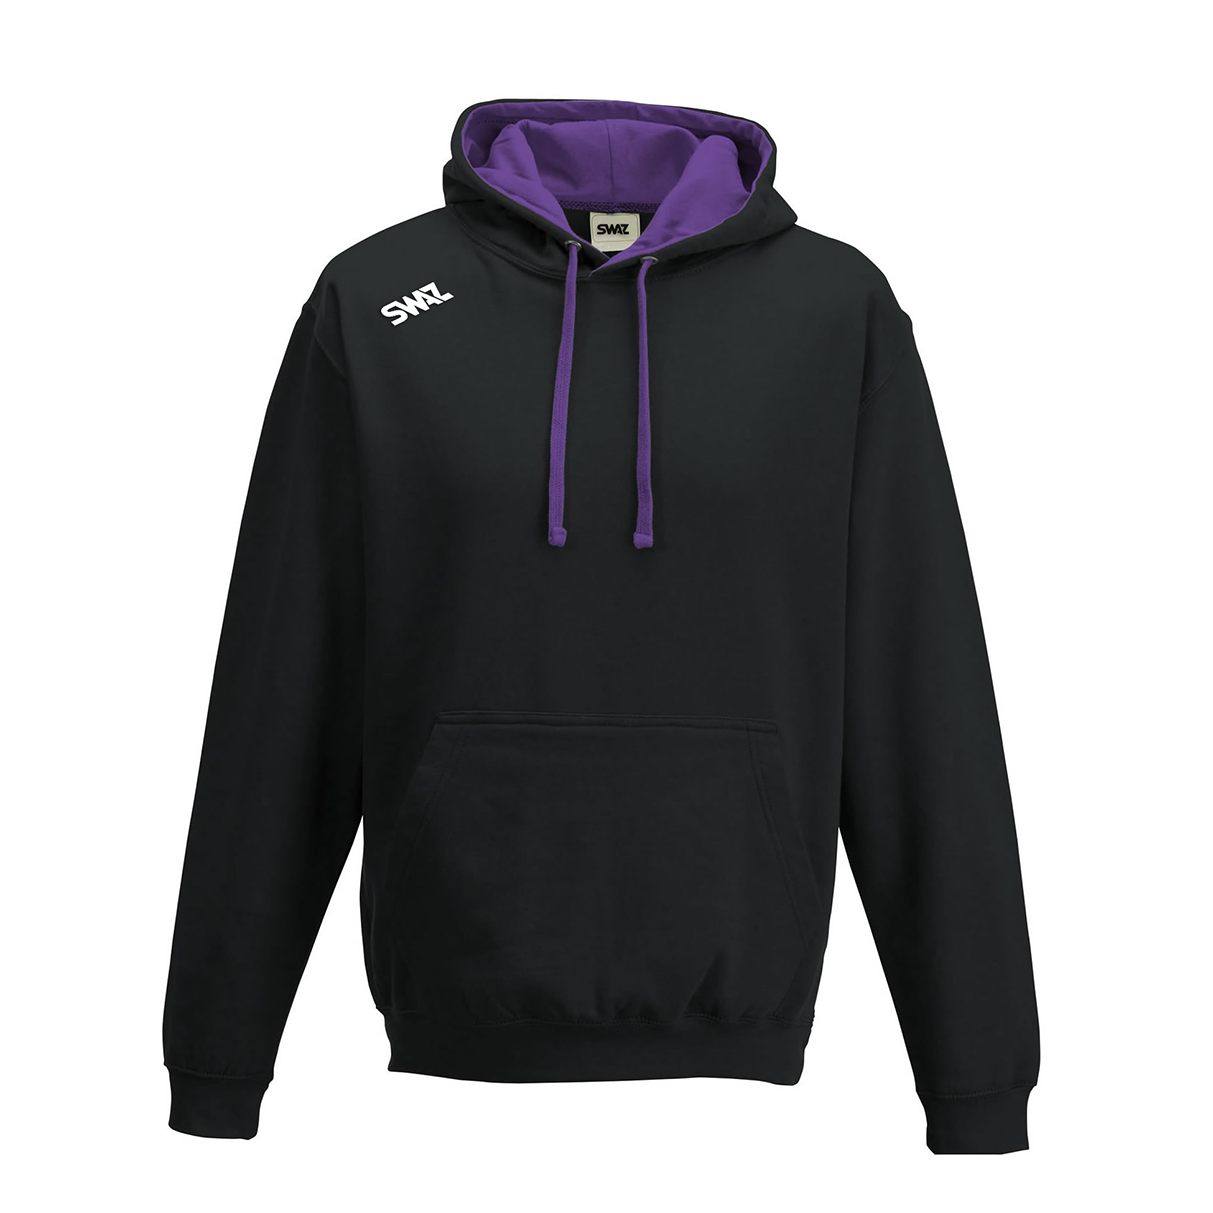 SWAZ Club Hoody – Black/Purple